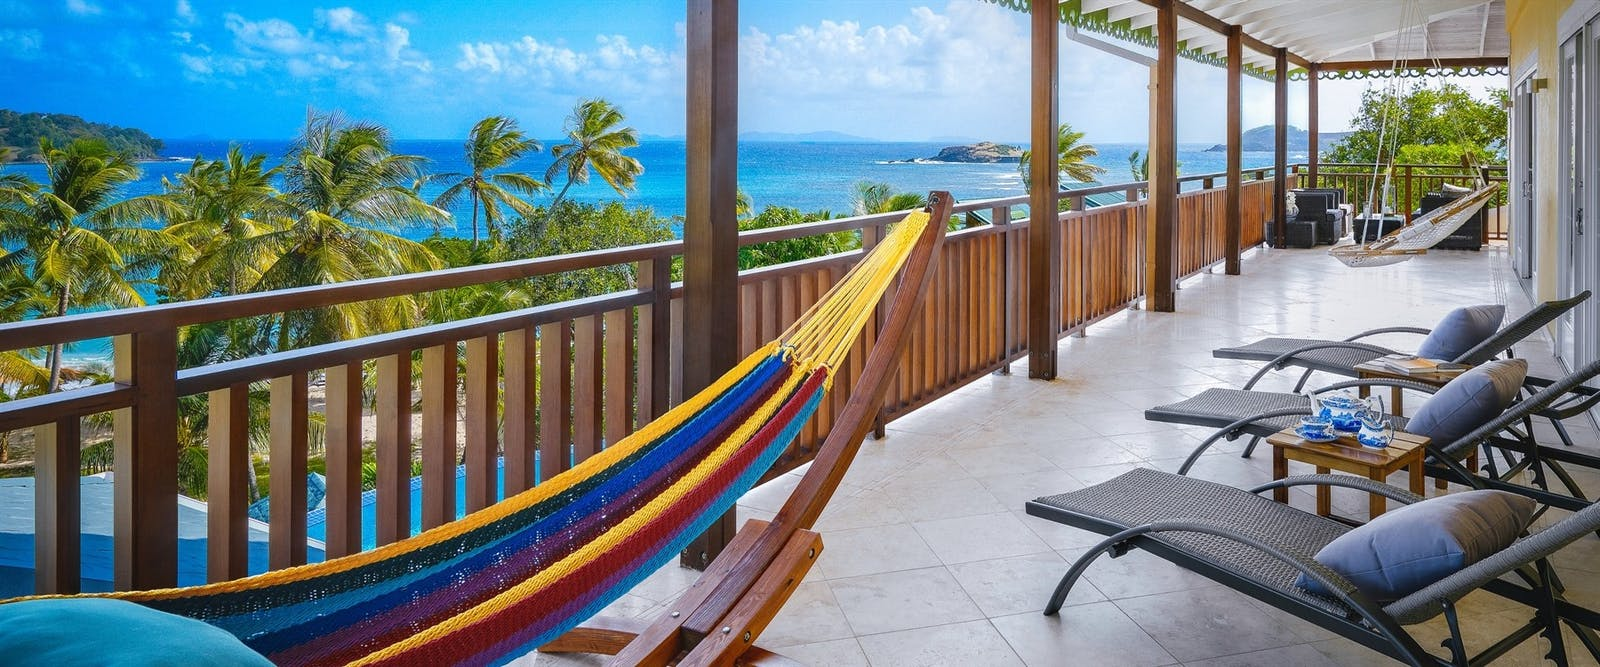 Estate Villa Terrace at Bequia Beach Hotel, St Vincent and The Grenadines